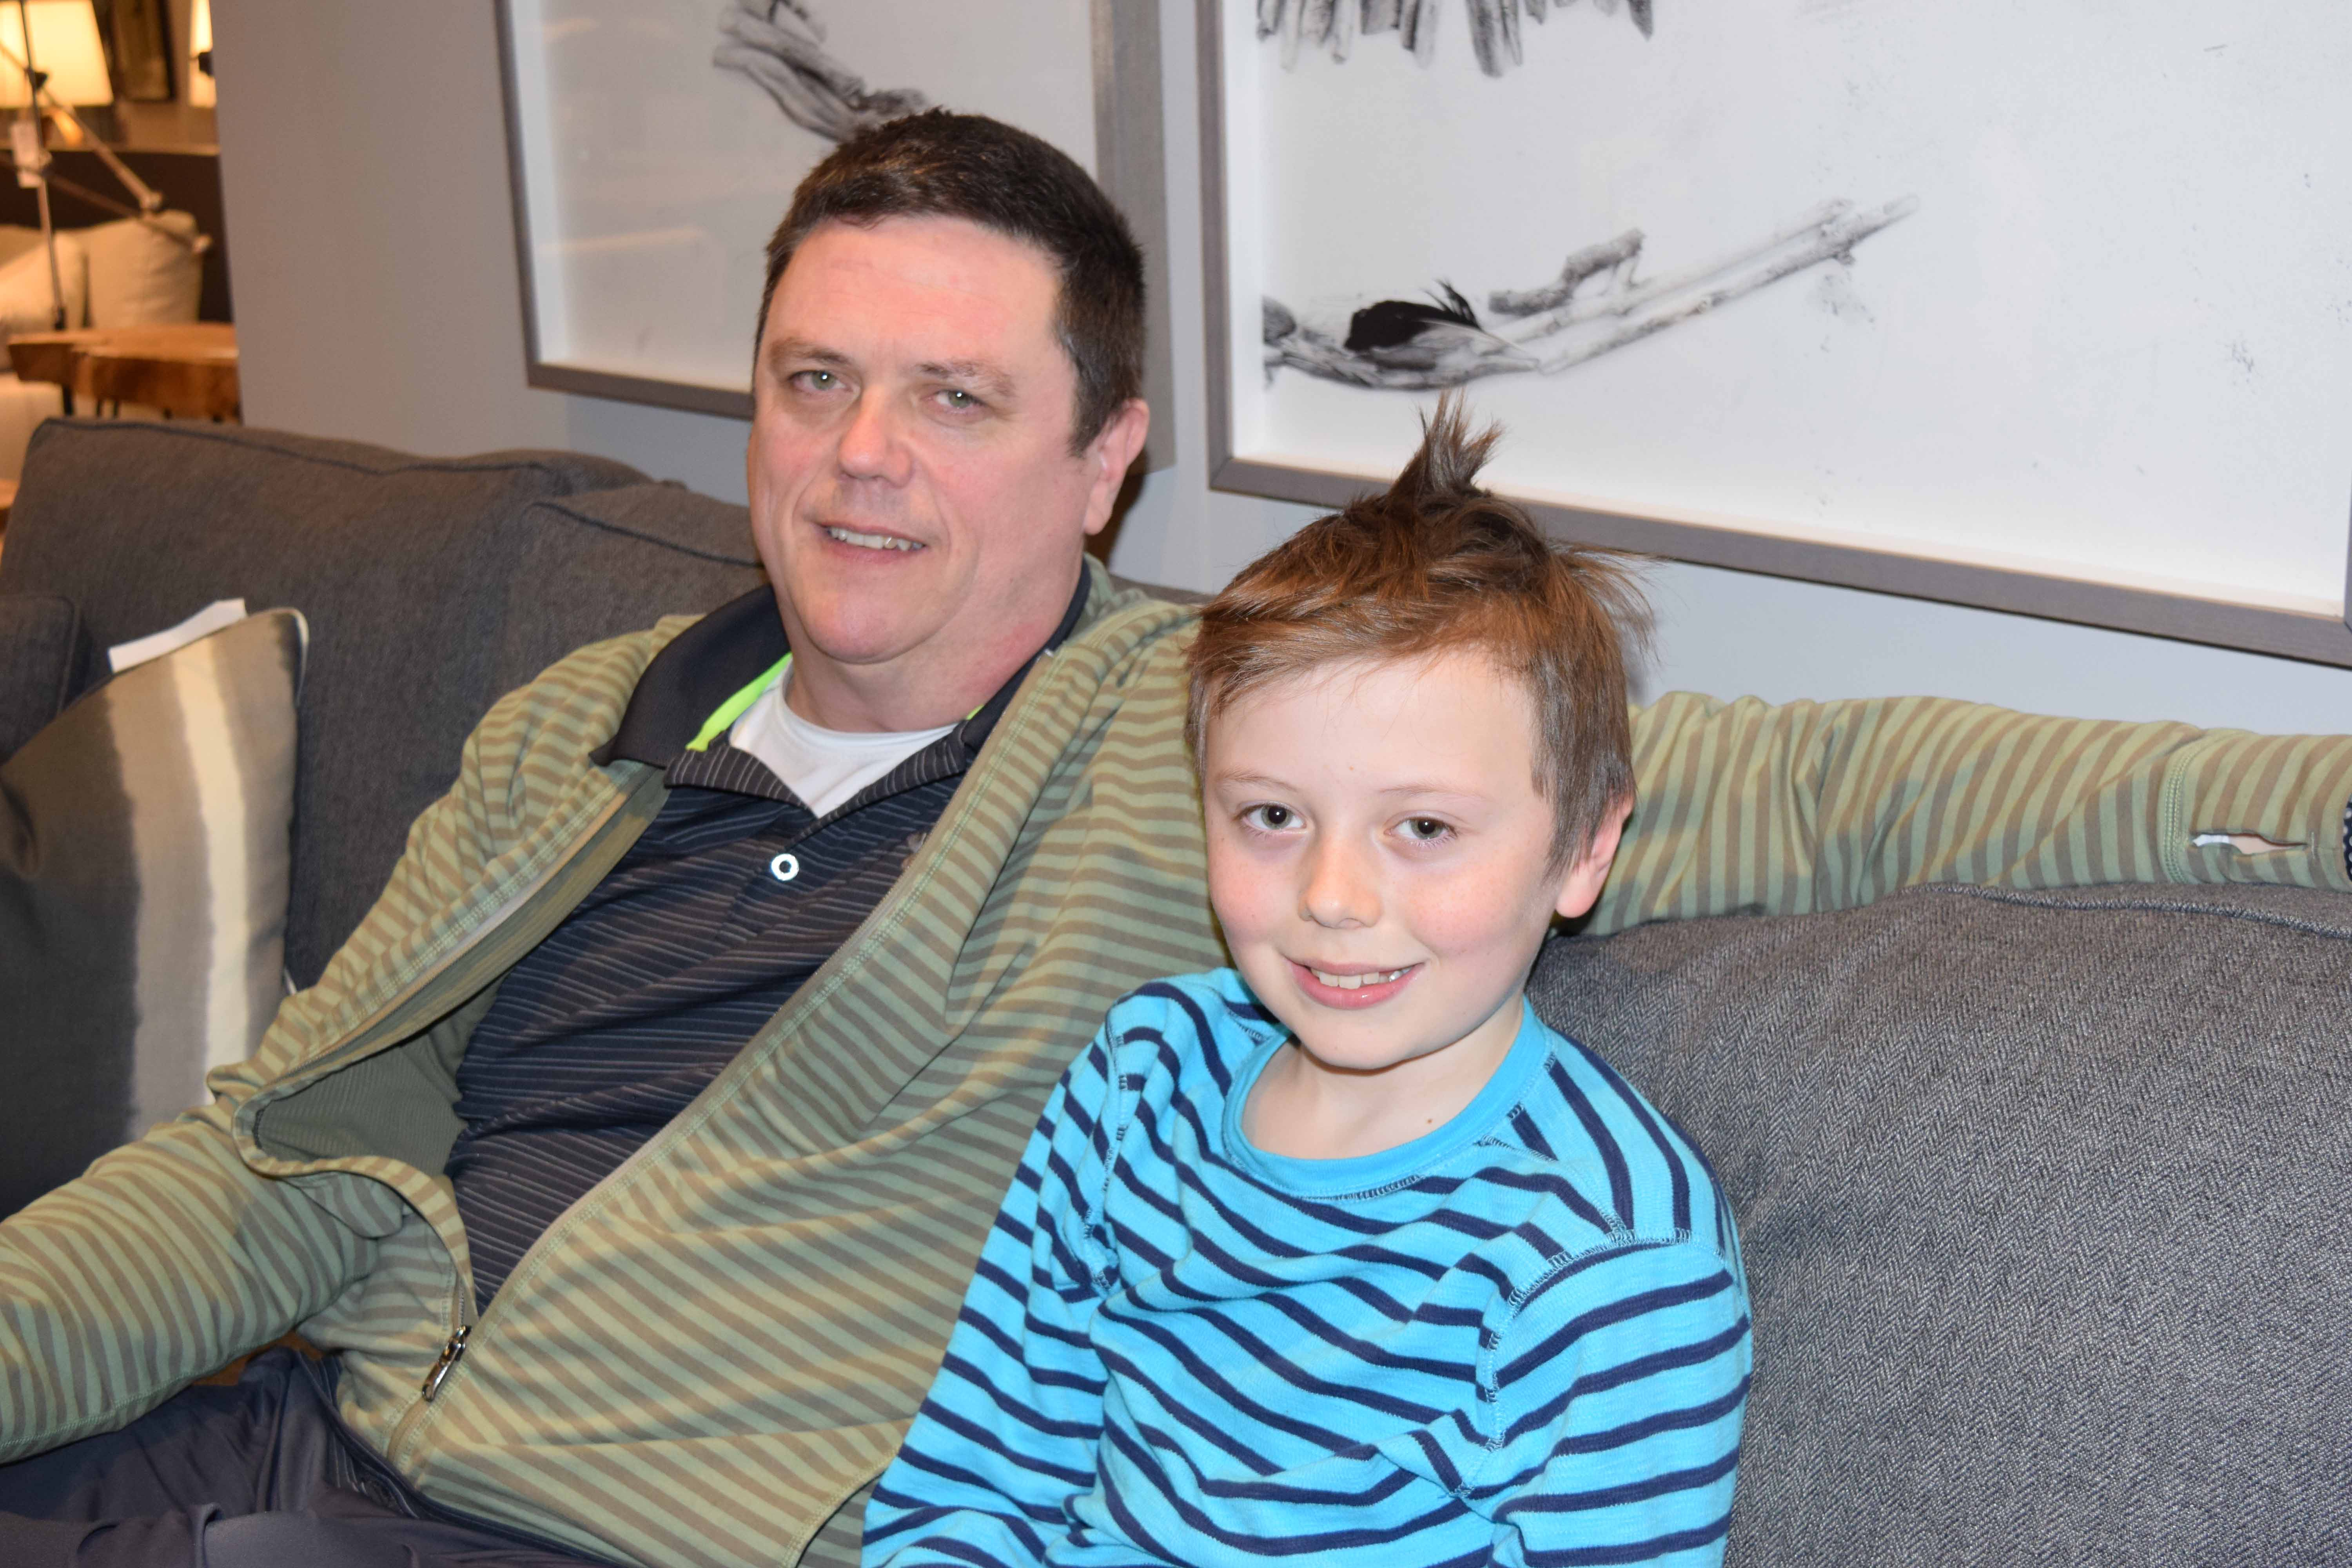 Sean O'Leary with his son, Ronan, inside the family store MYHome Furniture in Kanata. O'Leary says he is trying to give his children as normal a life as possible as his daughter struggles with drug addiction. (Devyn Barrie/OttawaStart.com)